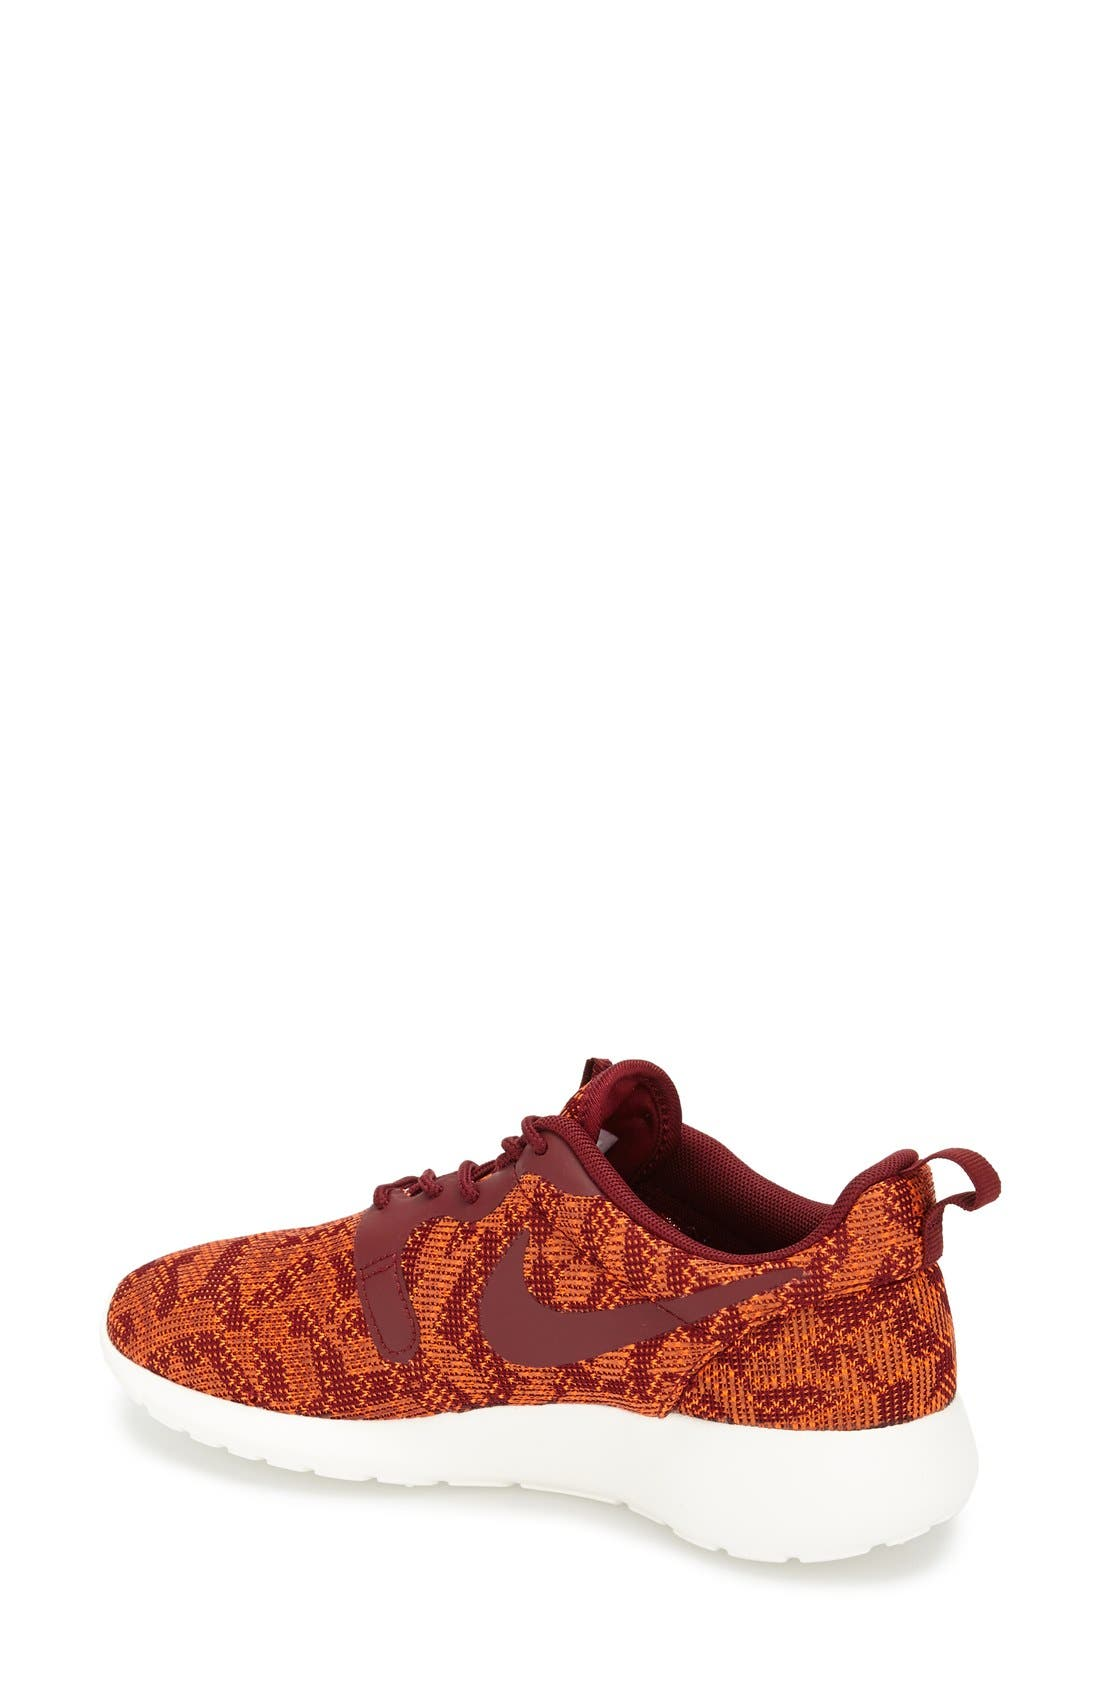 Alternate Image 2  - Nike 'Roshe Run' Jacquard Sneaker (Women)